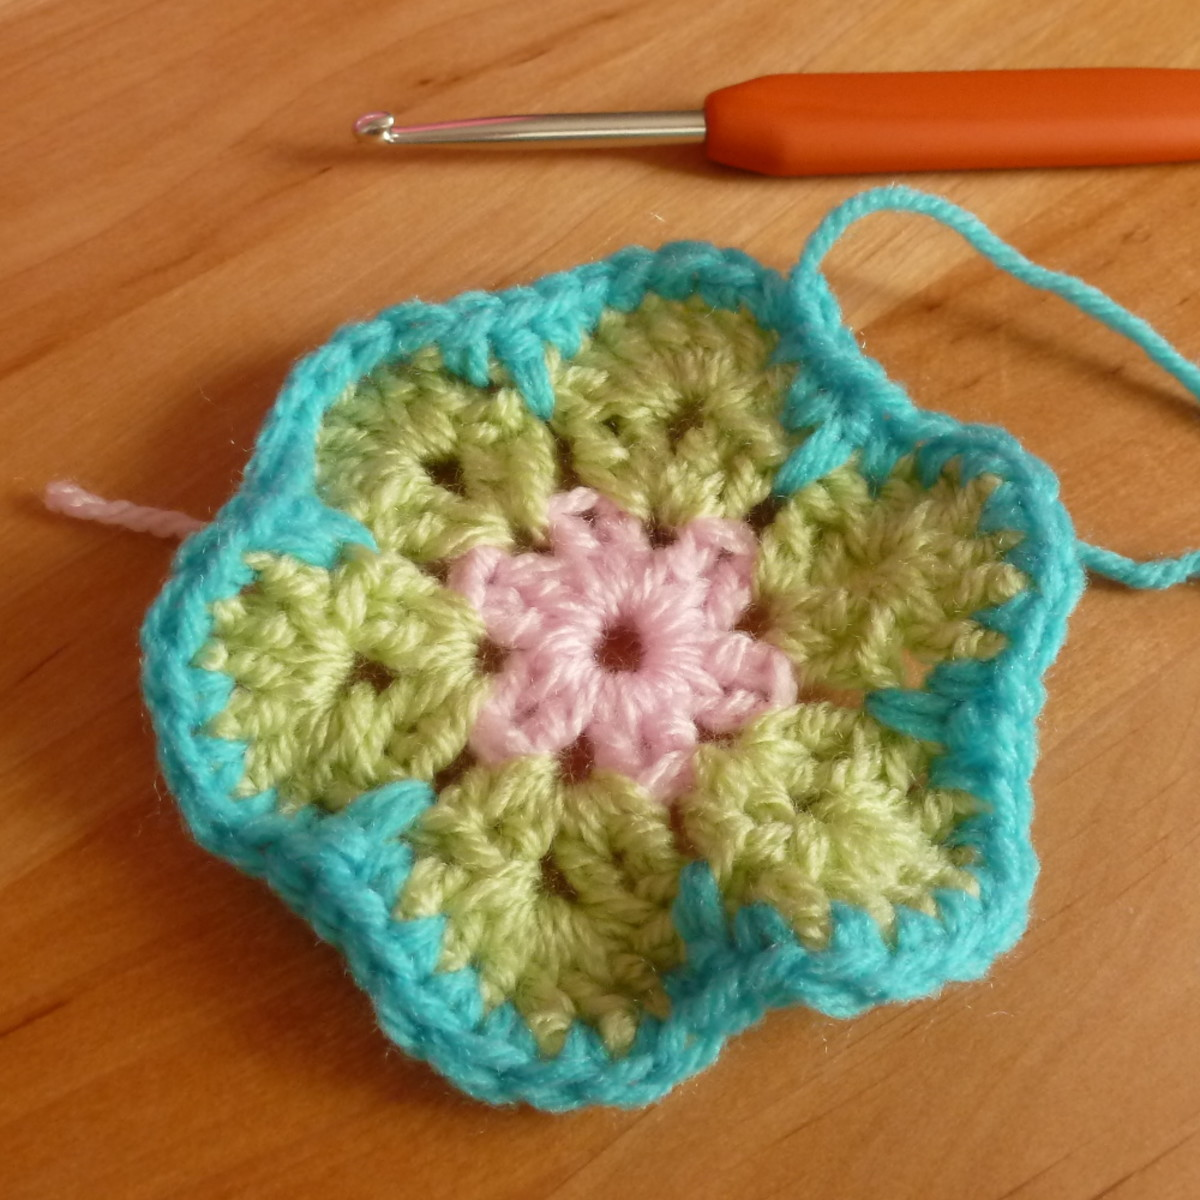 The completed large flower made using crochet.